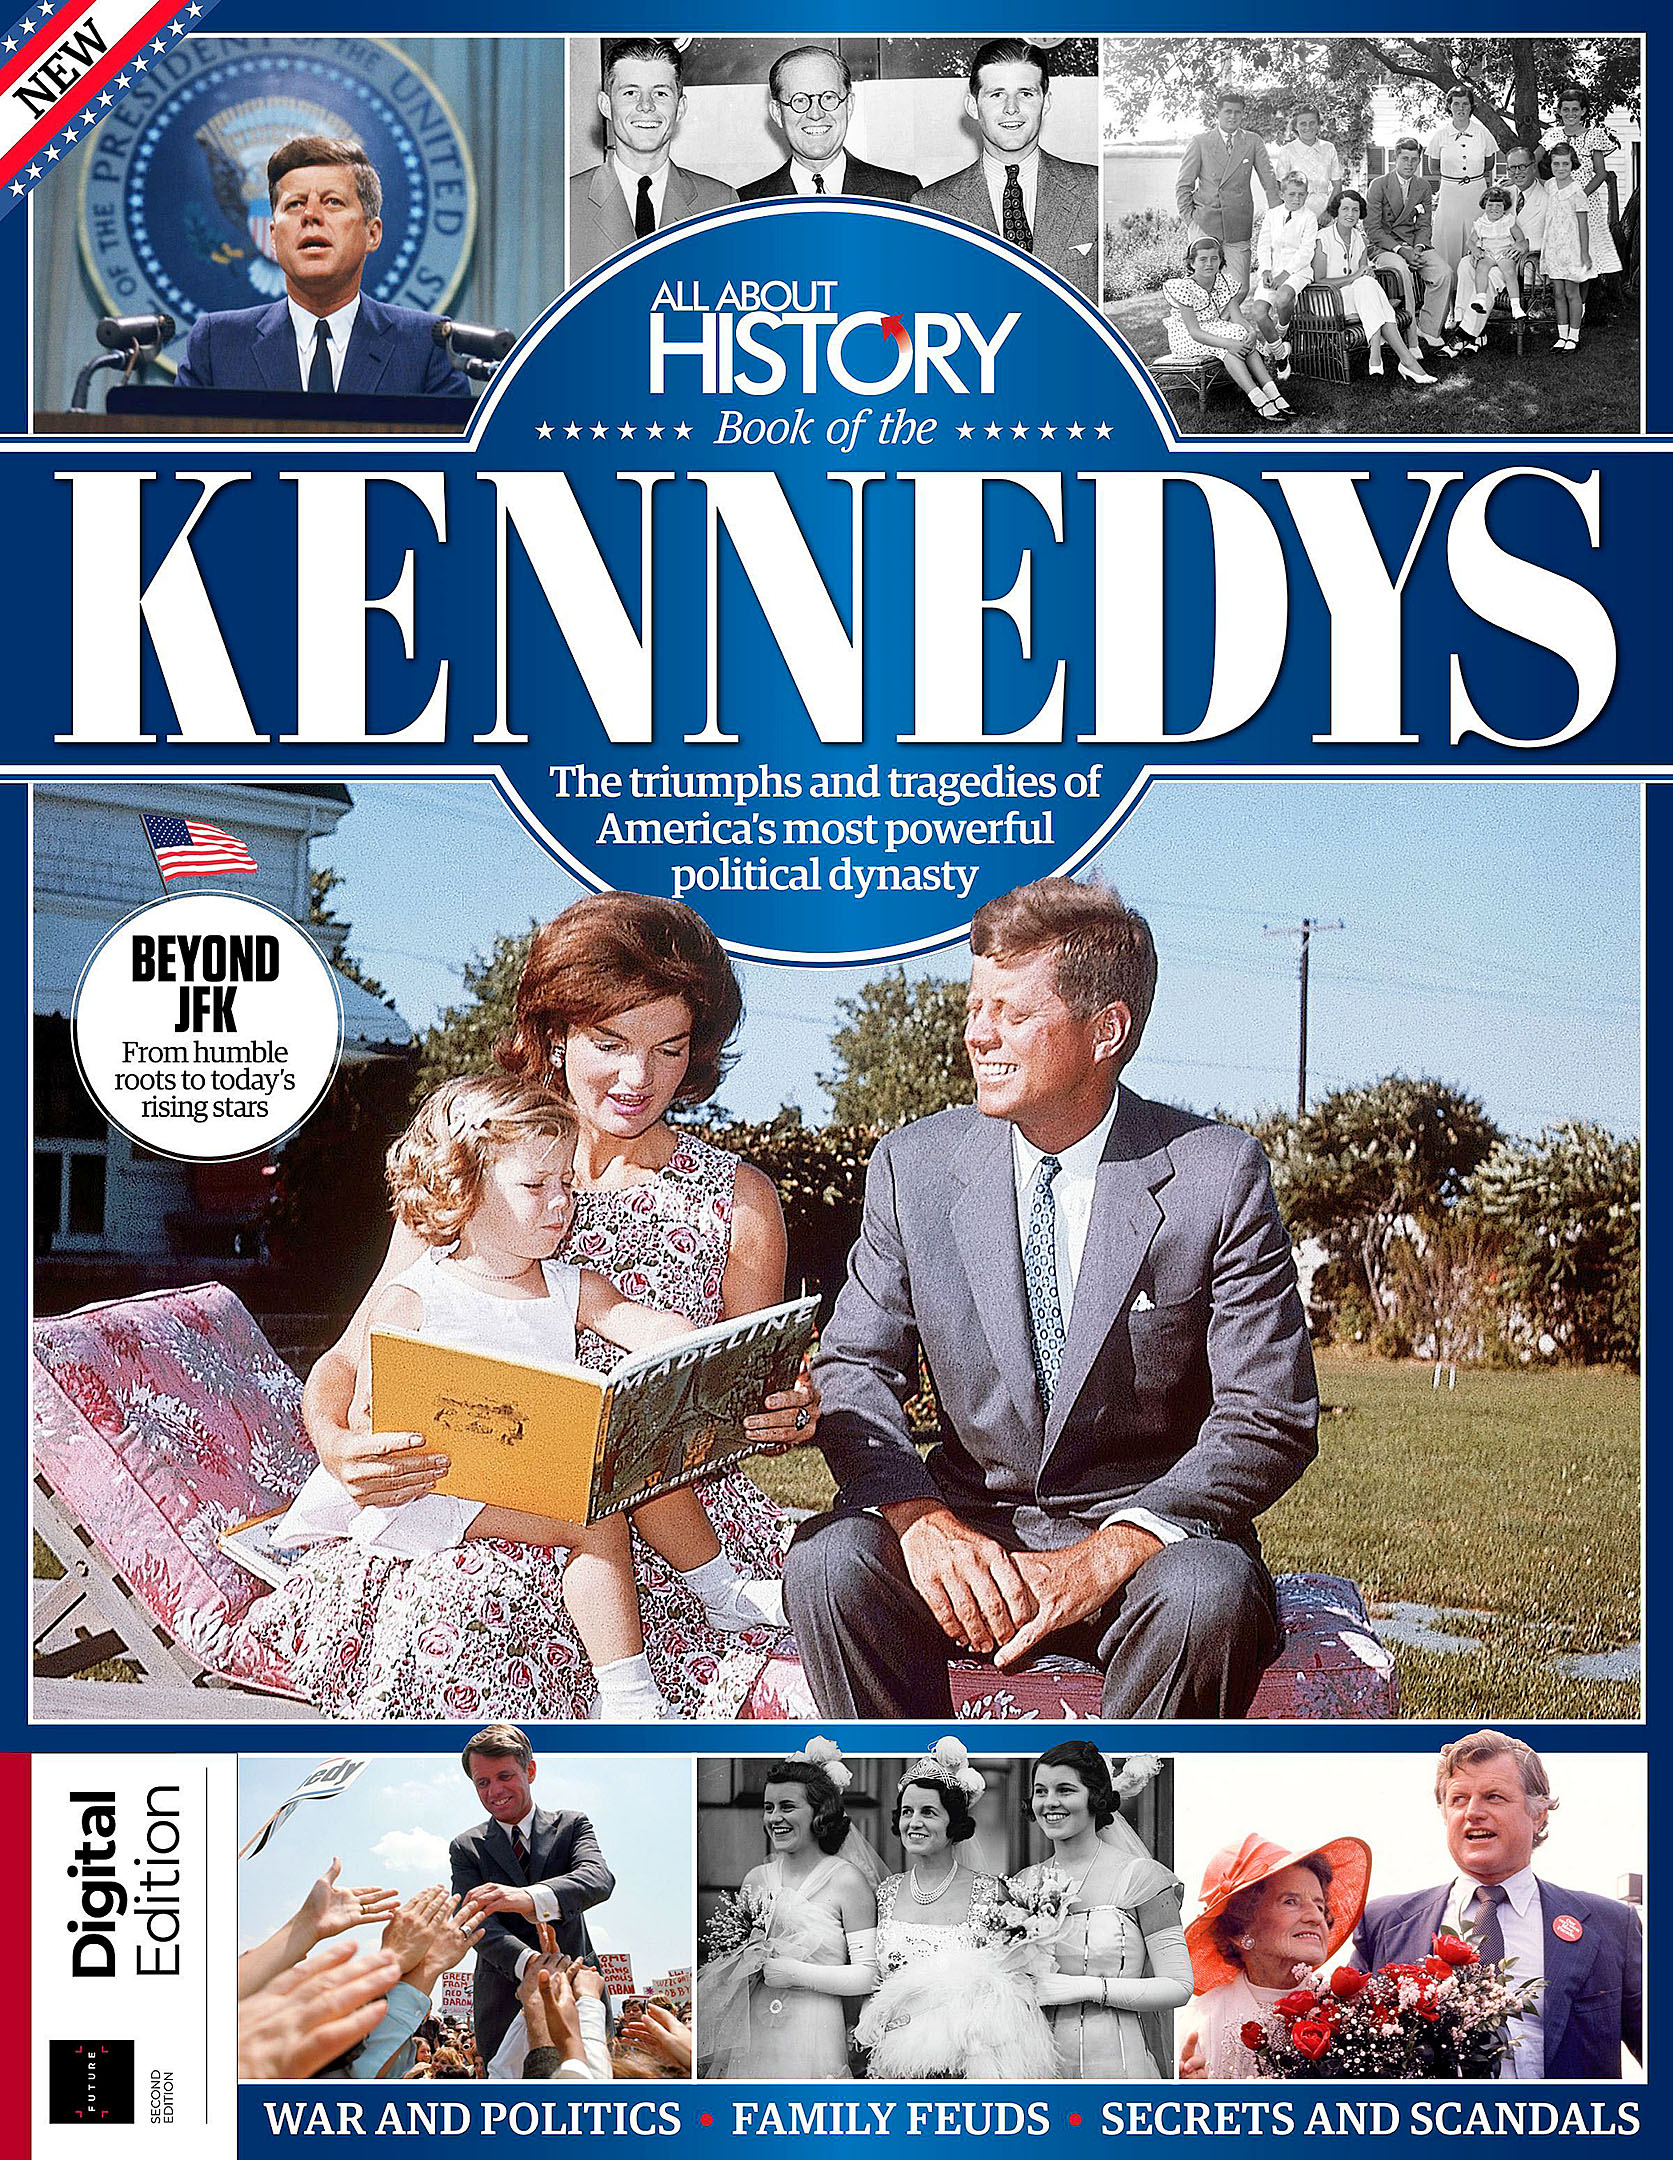 All About History Book of the Kennedy 2rd Ed 2019001.jpg